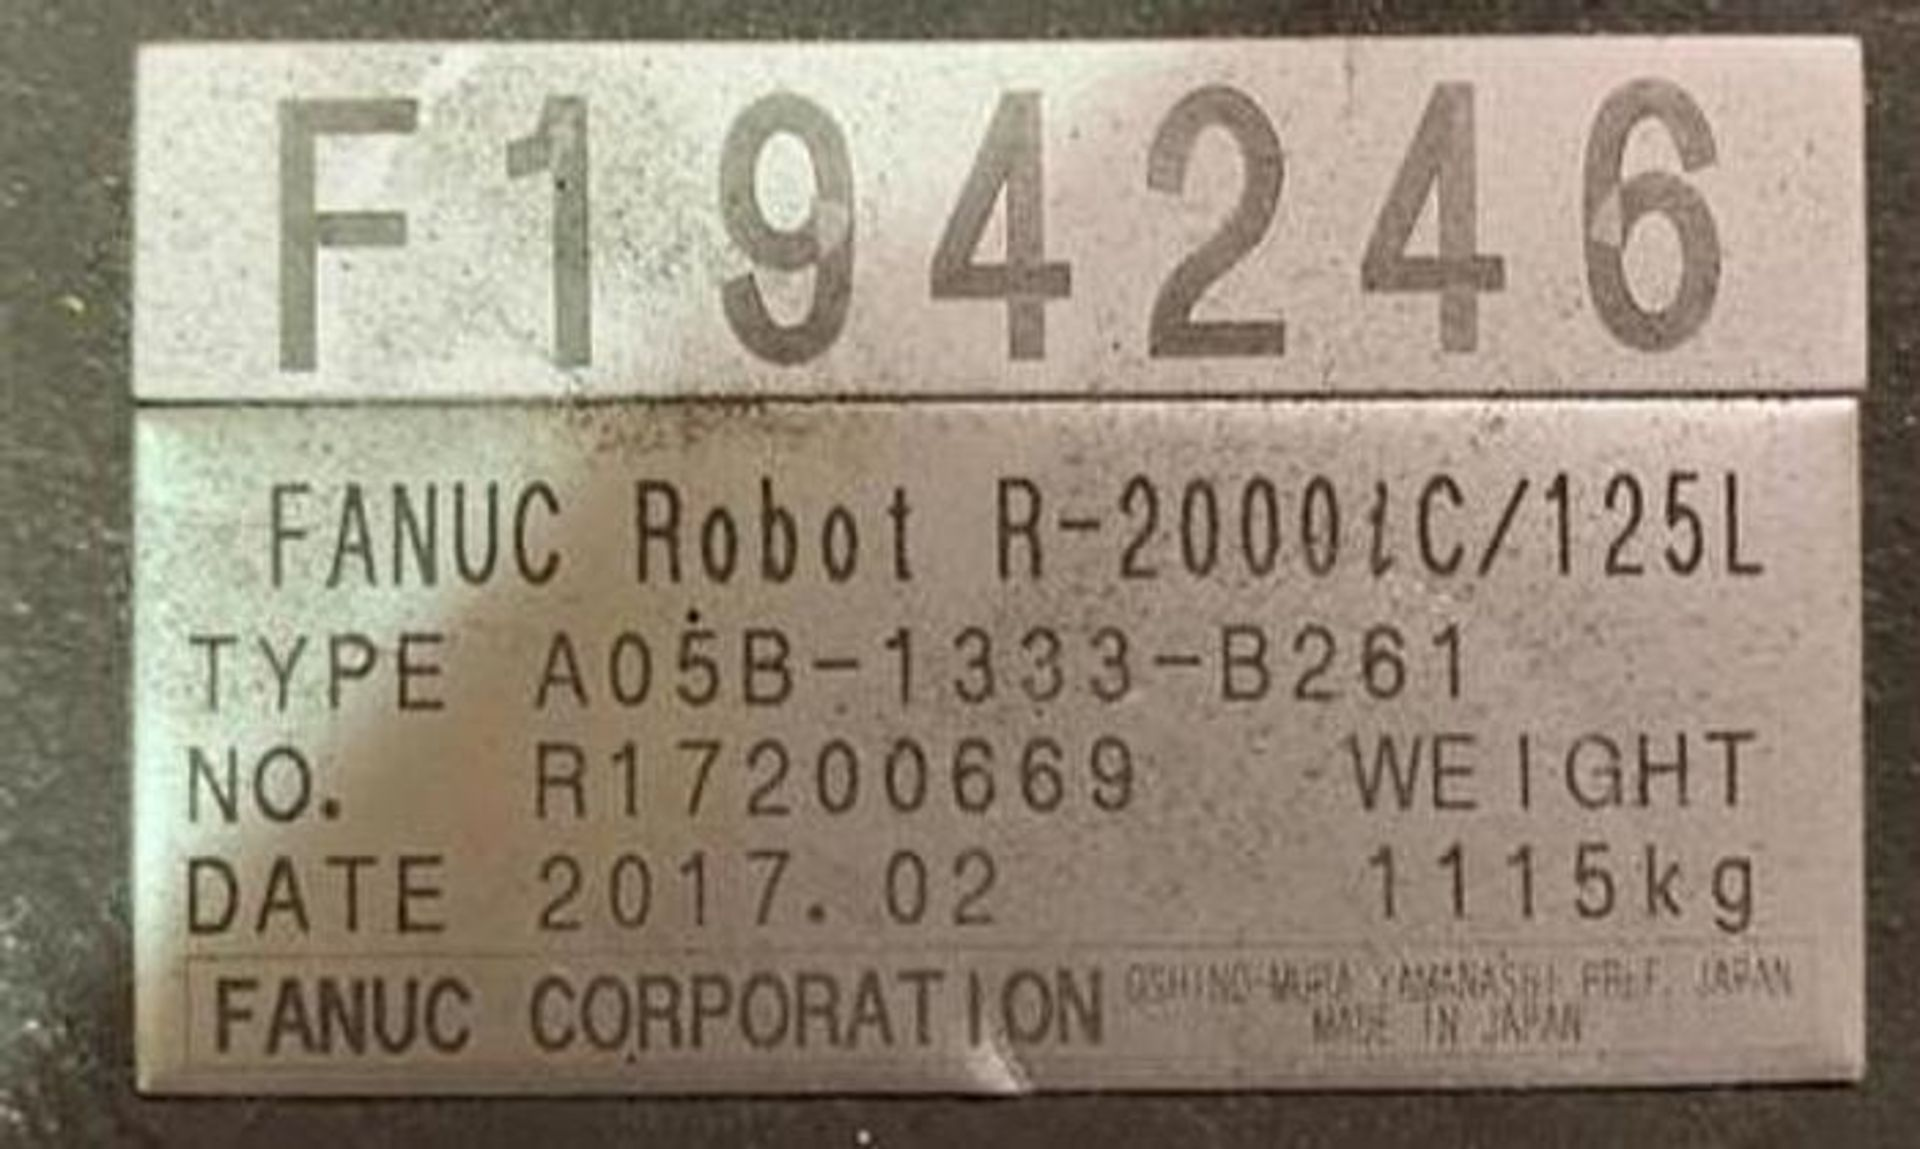 FANUC ROBOT R2000iC/125L 6 AXIS ROBOT WITH R30iB CONTROLLER, IR VISION, SN 194246, CABLES & TEACH - Image 16 of 19